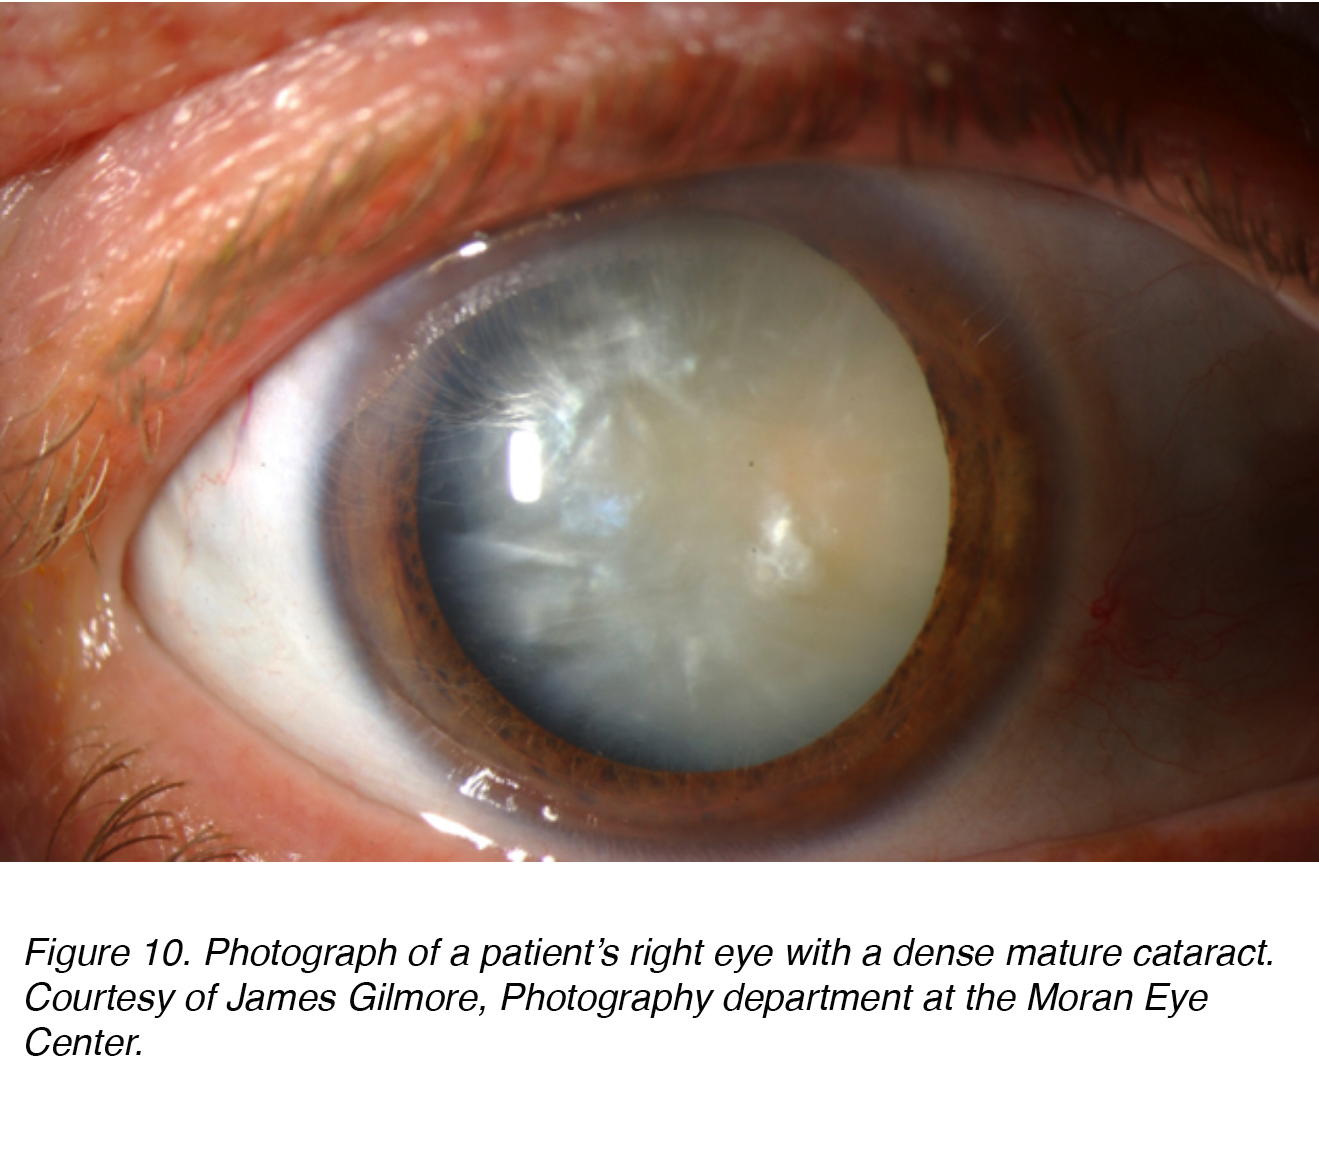 senile mature cataract